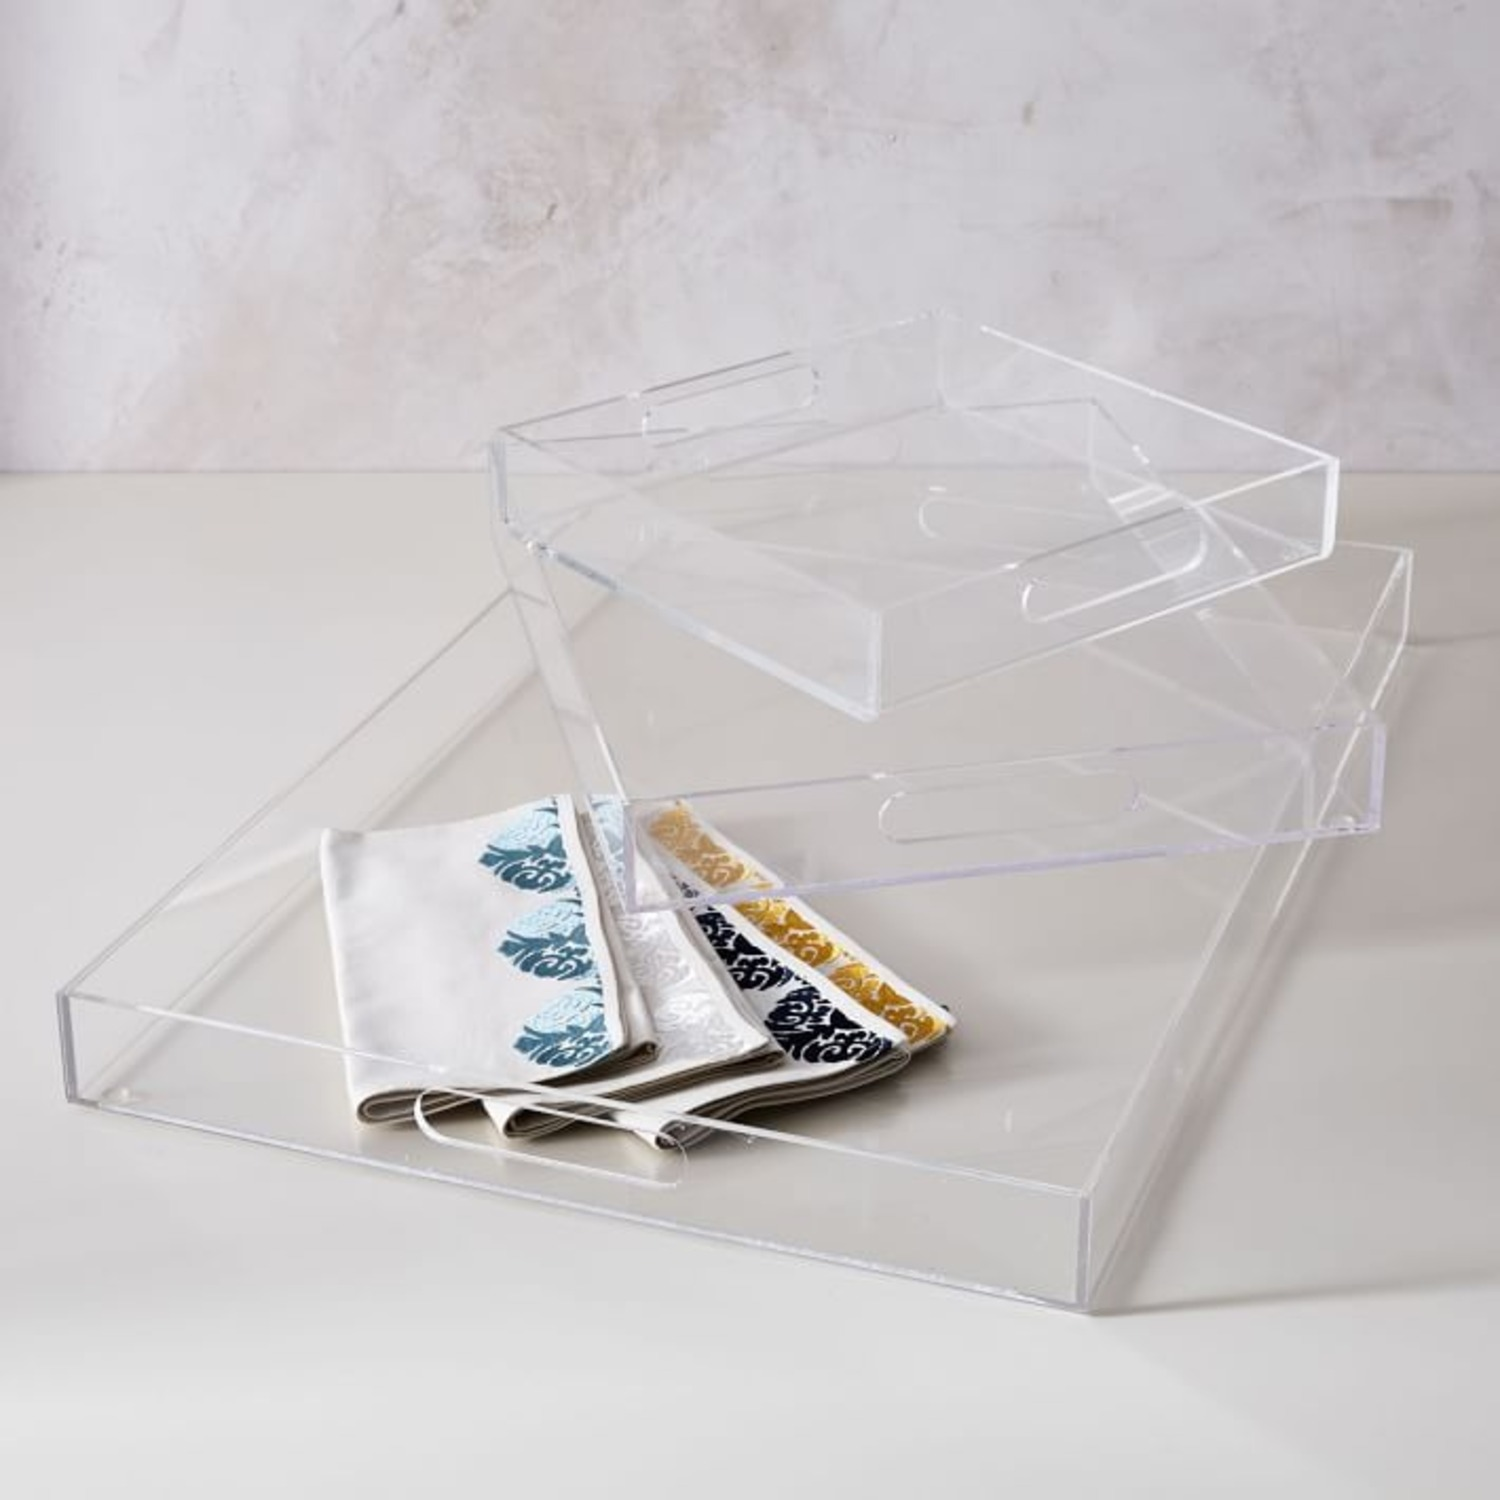 West Elm Clear Acrylic Square Tray - image-4